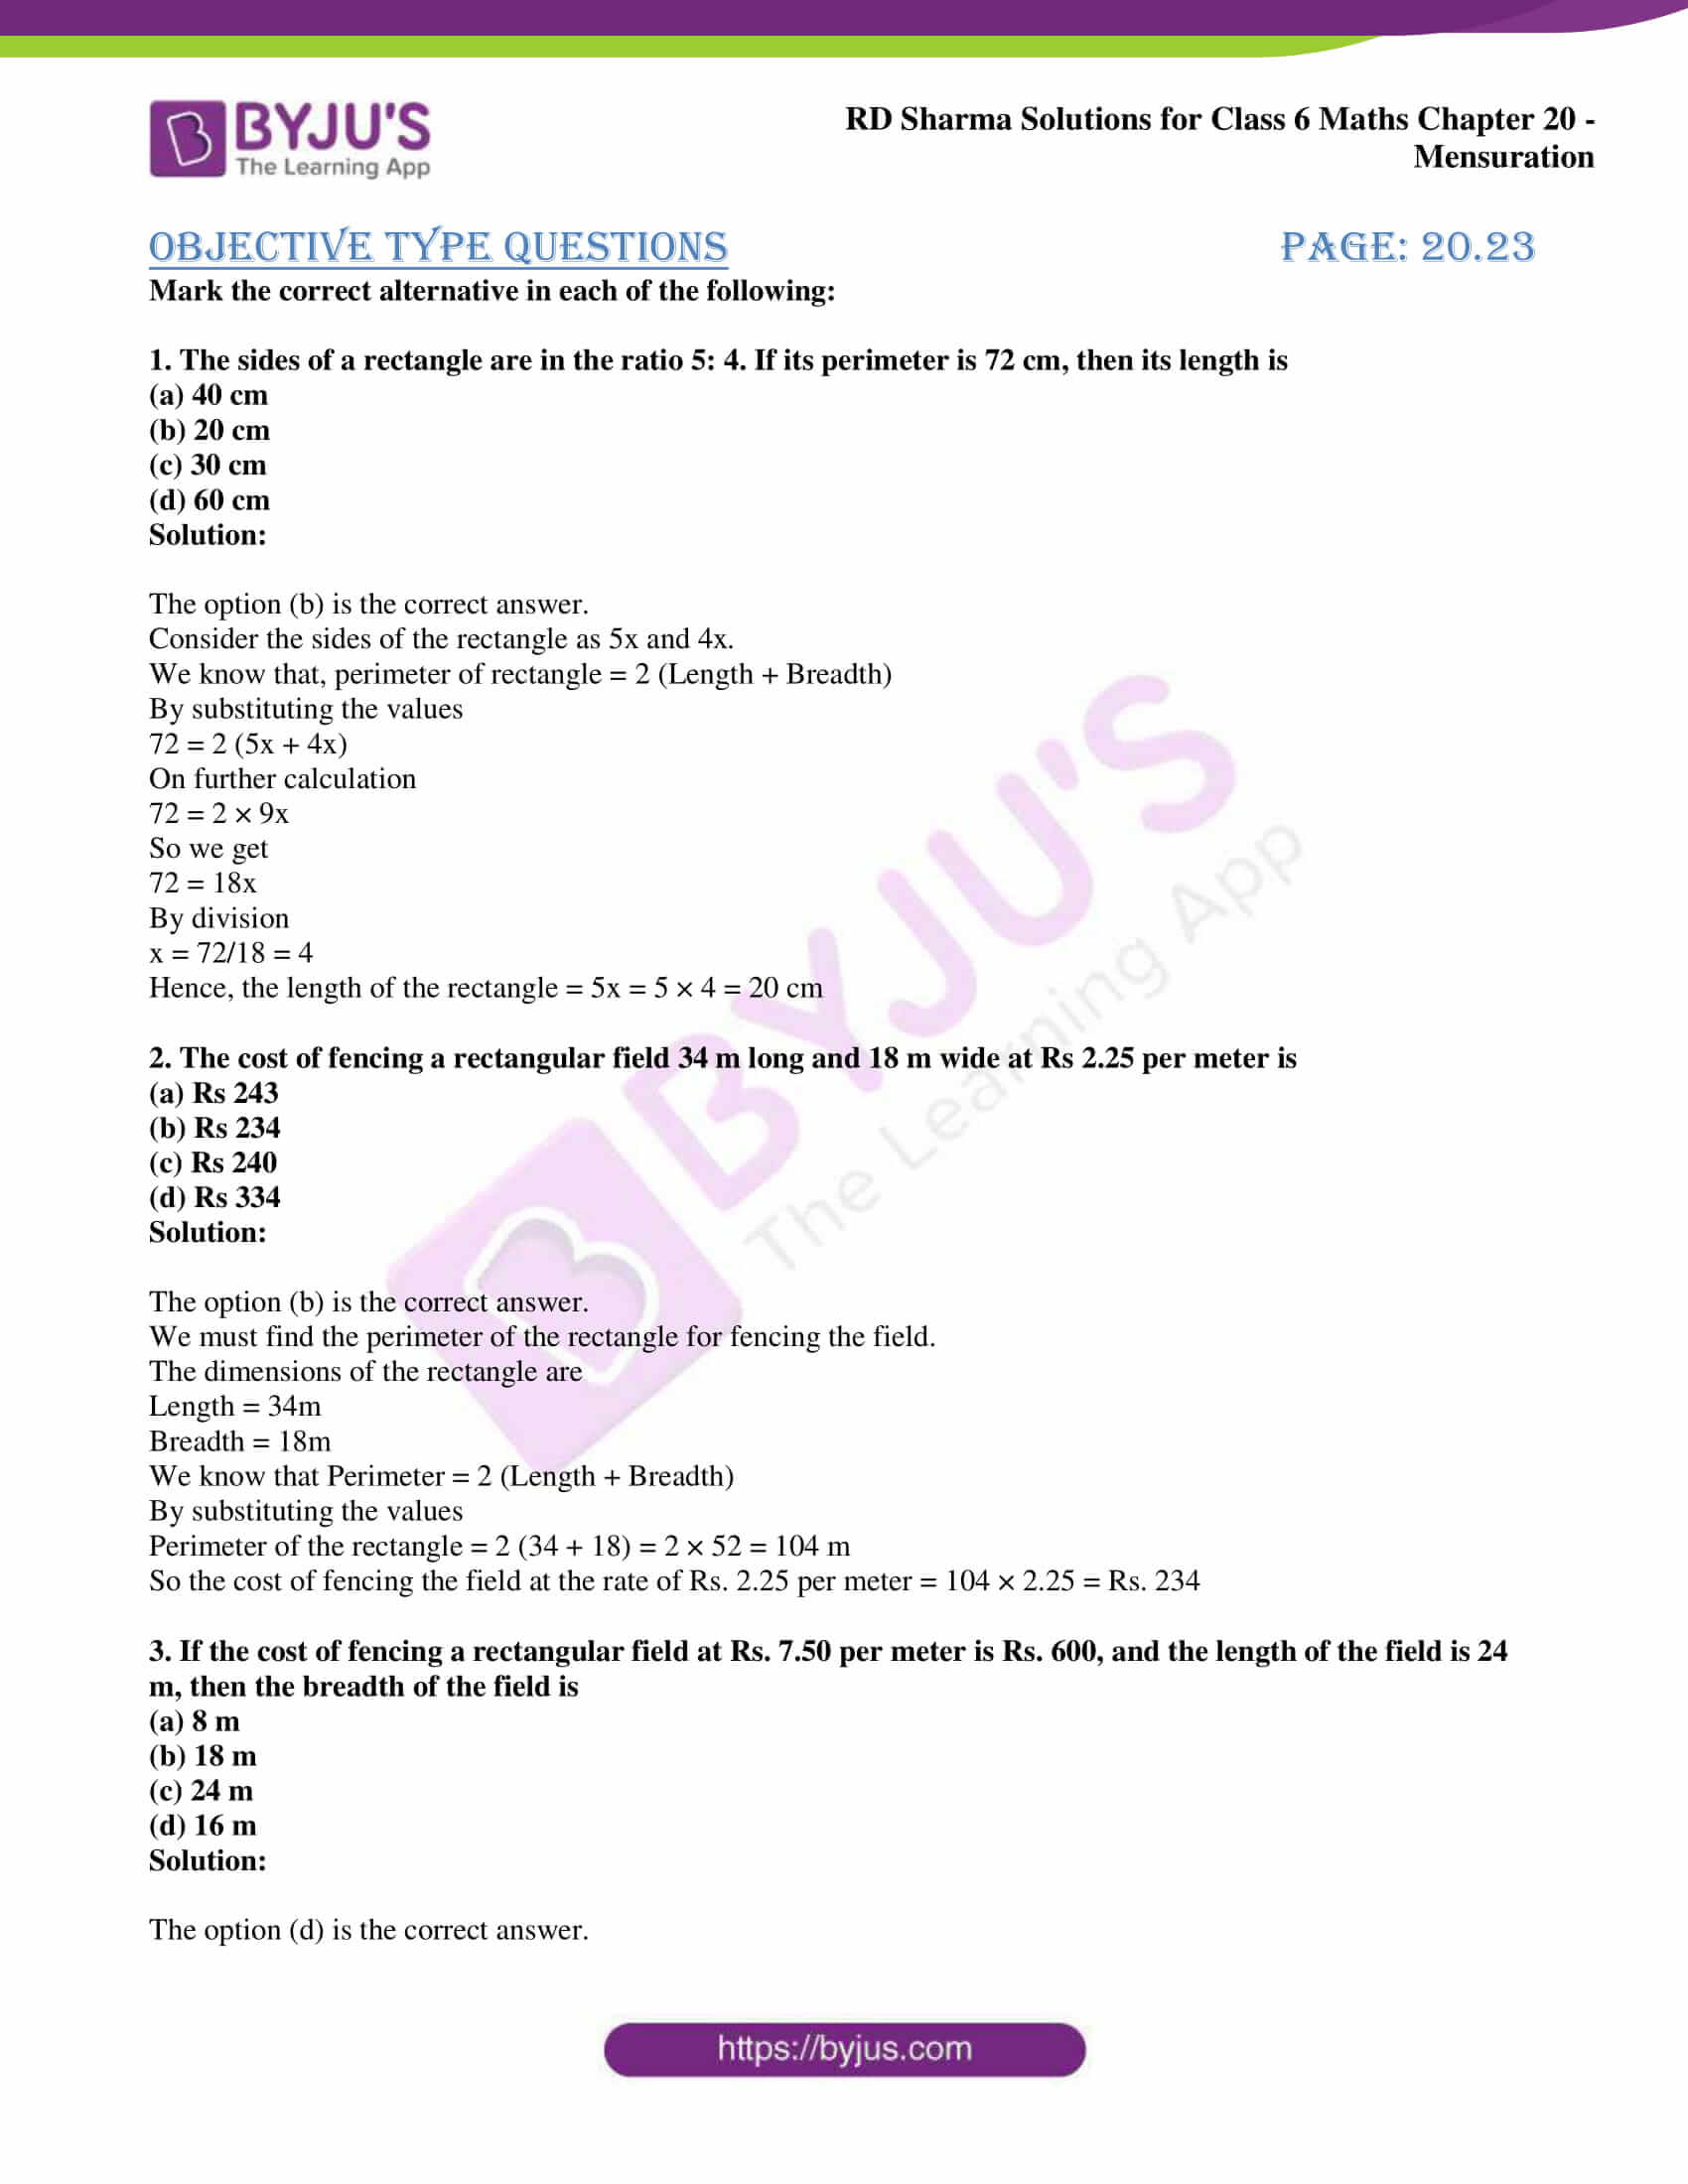 rd sharma solutions nov2020 class 6 maths chapter 20 exercise obj 1